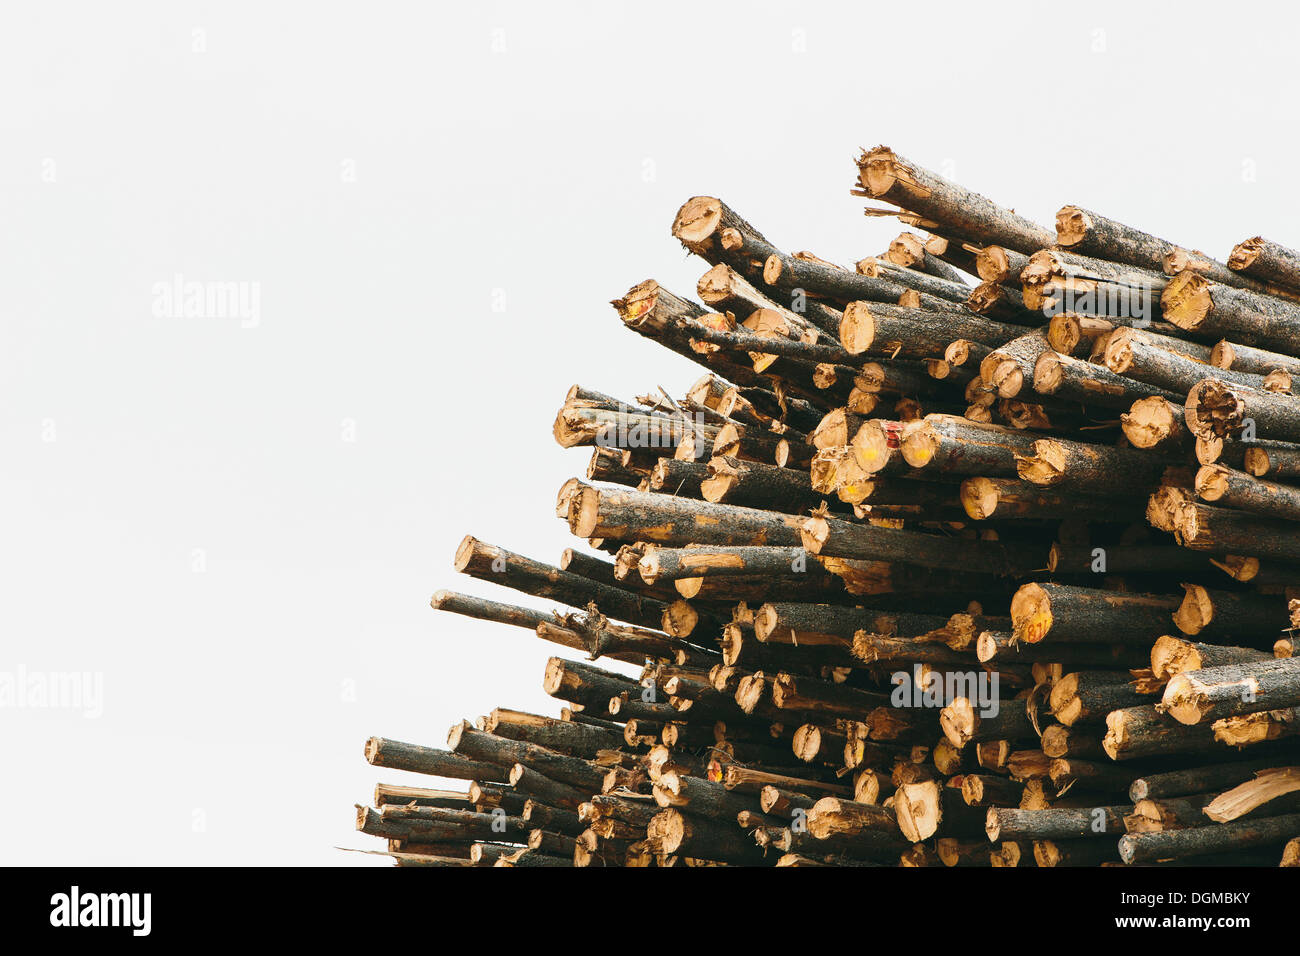 A stack of cut timber logs, Lodge Pole pine trees at a lumber mill. - Stock Image